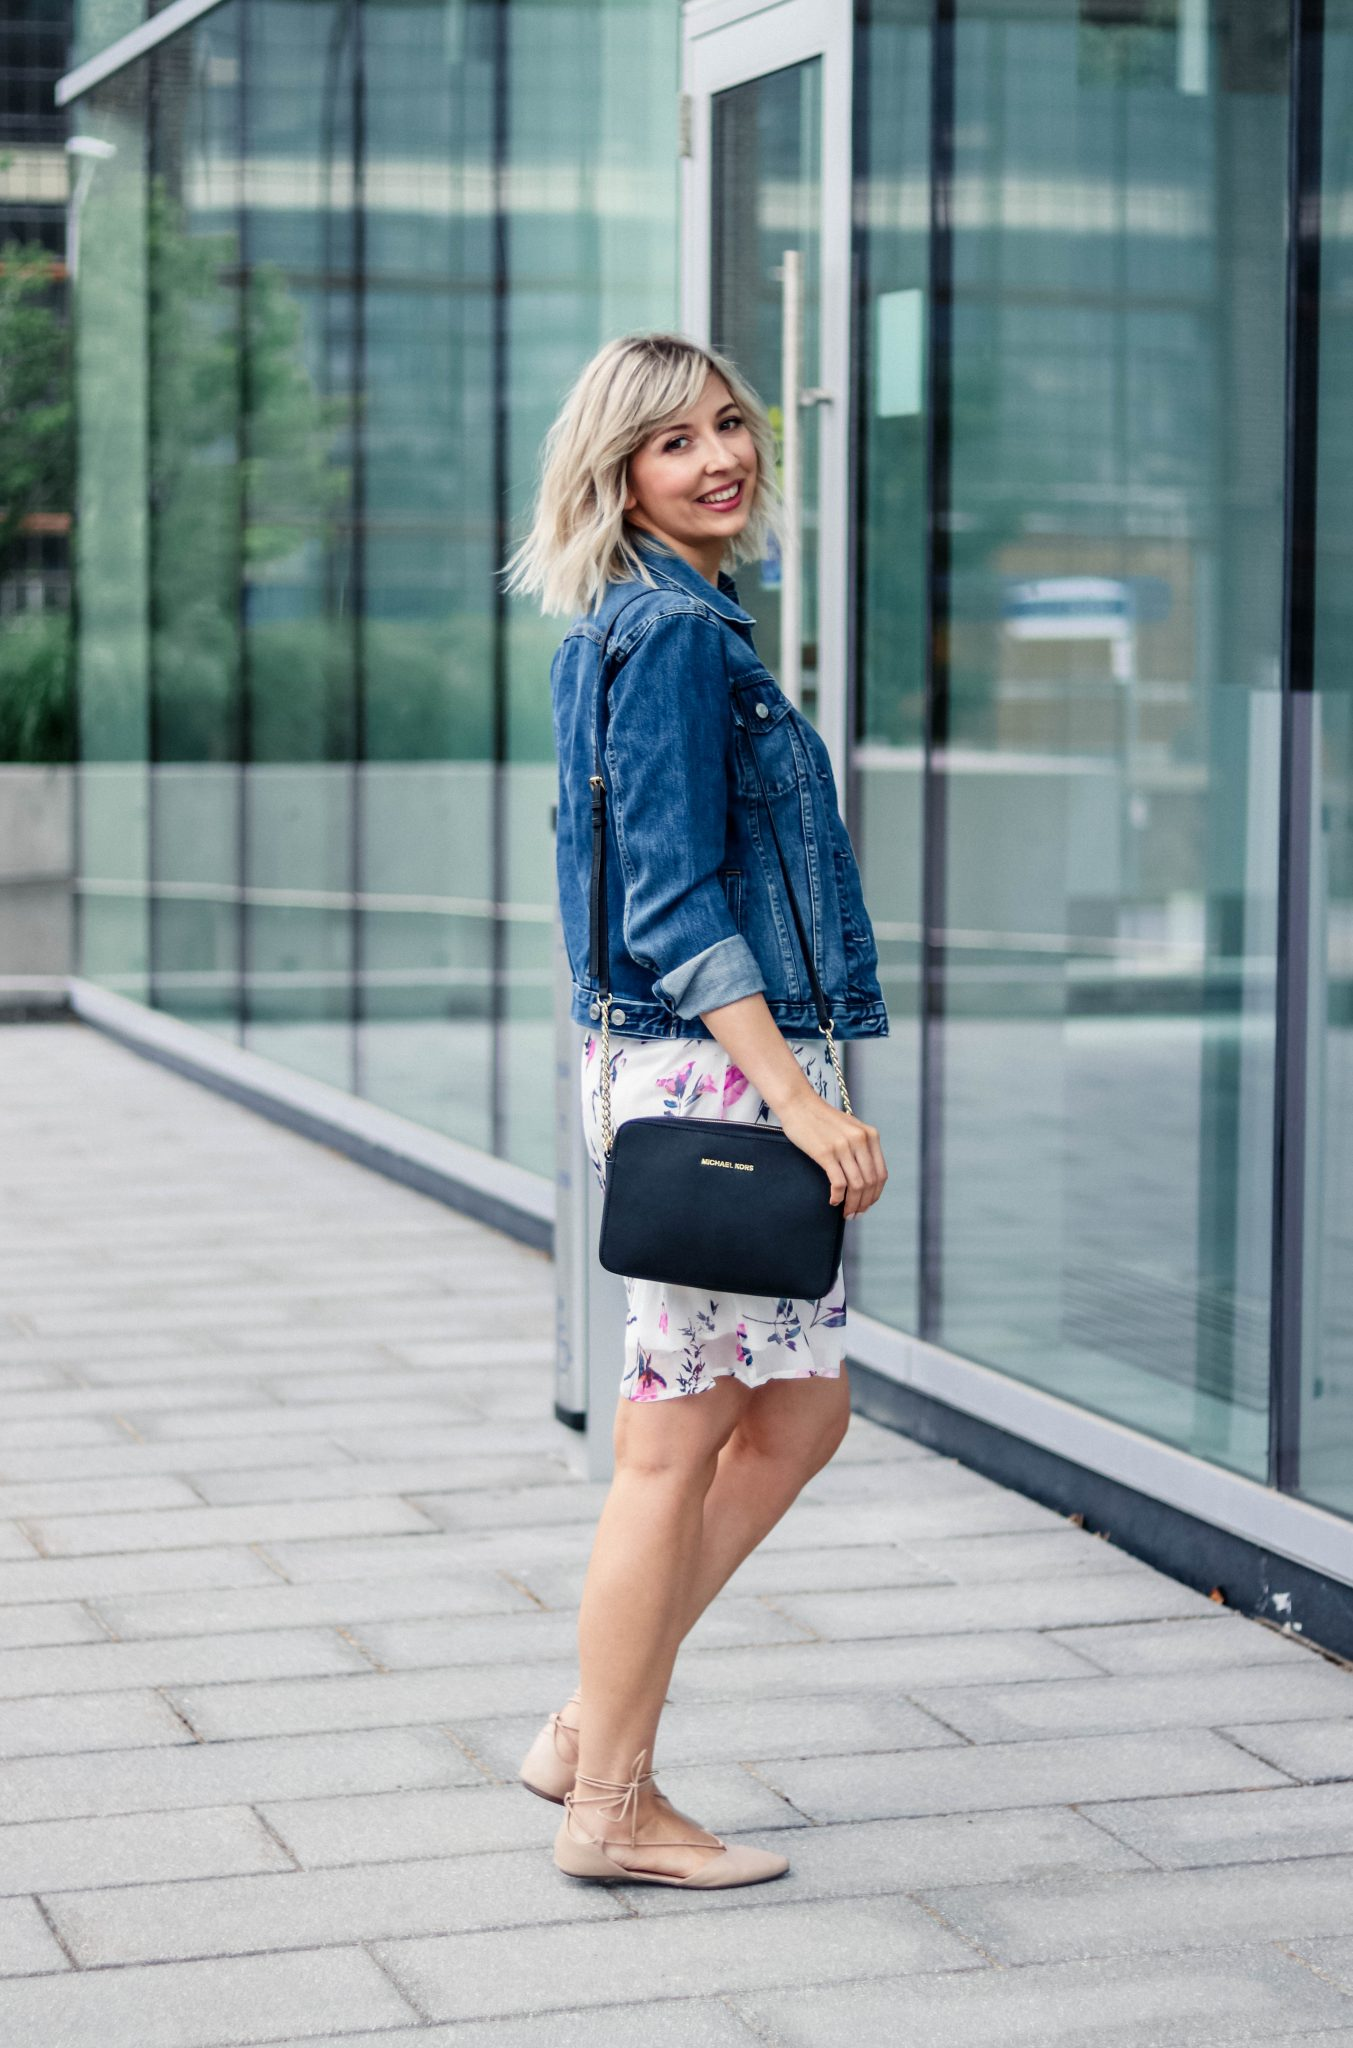 summer dress for fall transition style